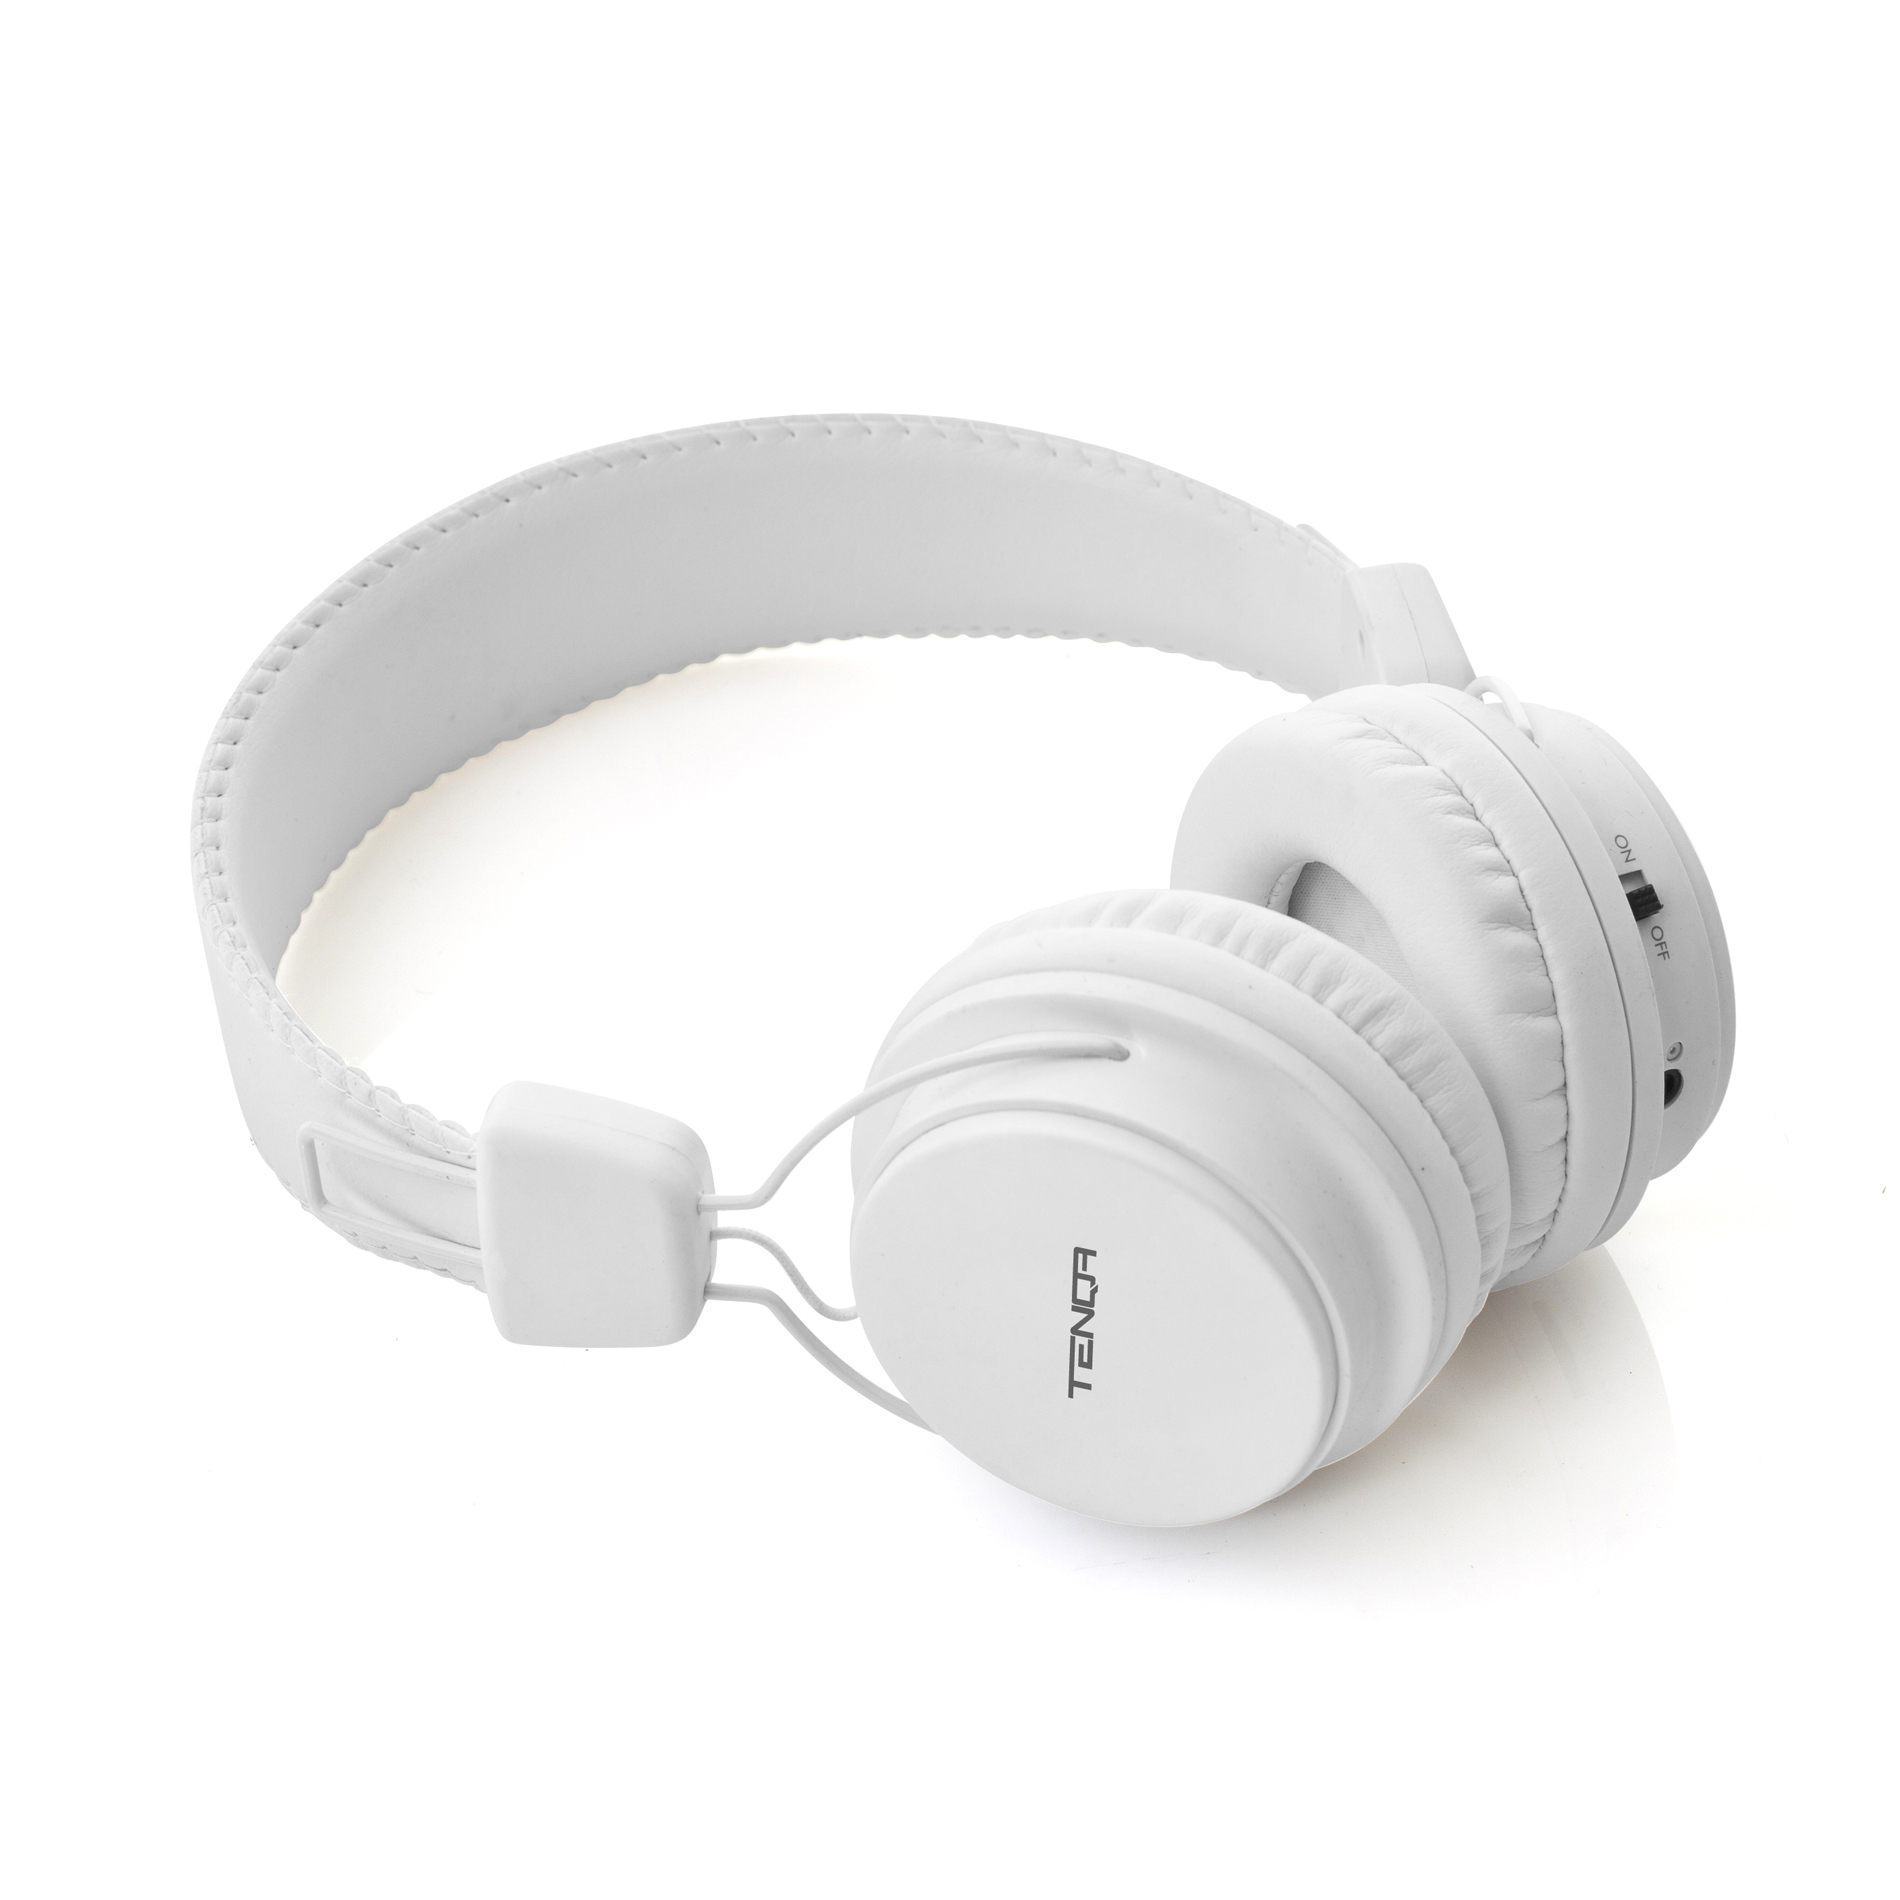 Tenqa Releases Dj Style Remxd Bluetooth 174 Headphones For 39